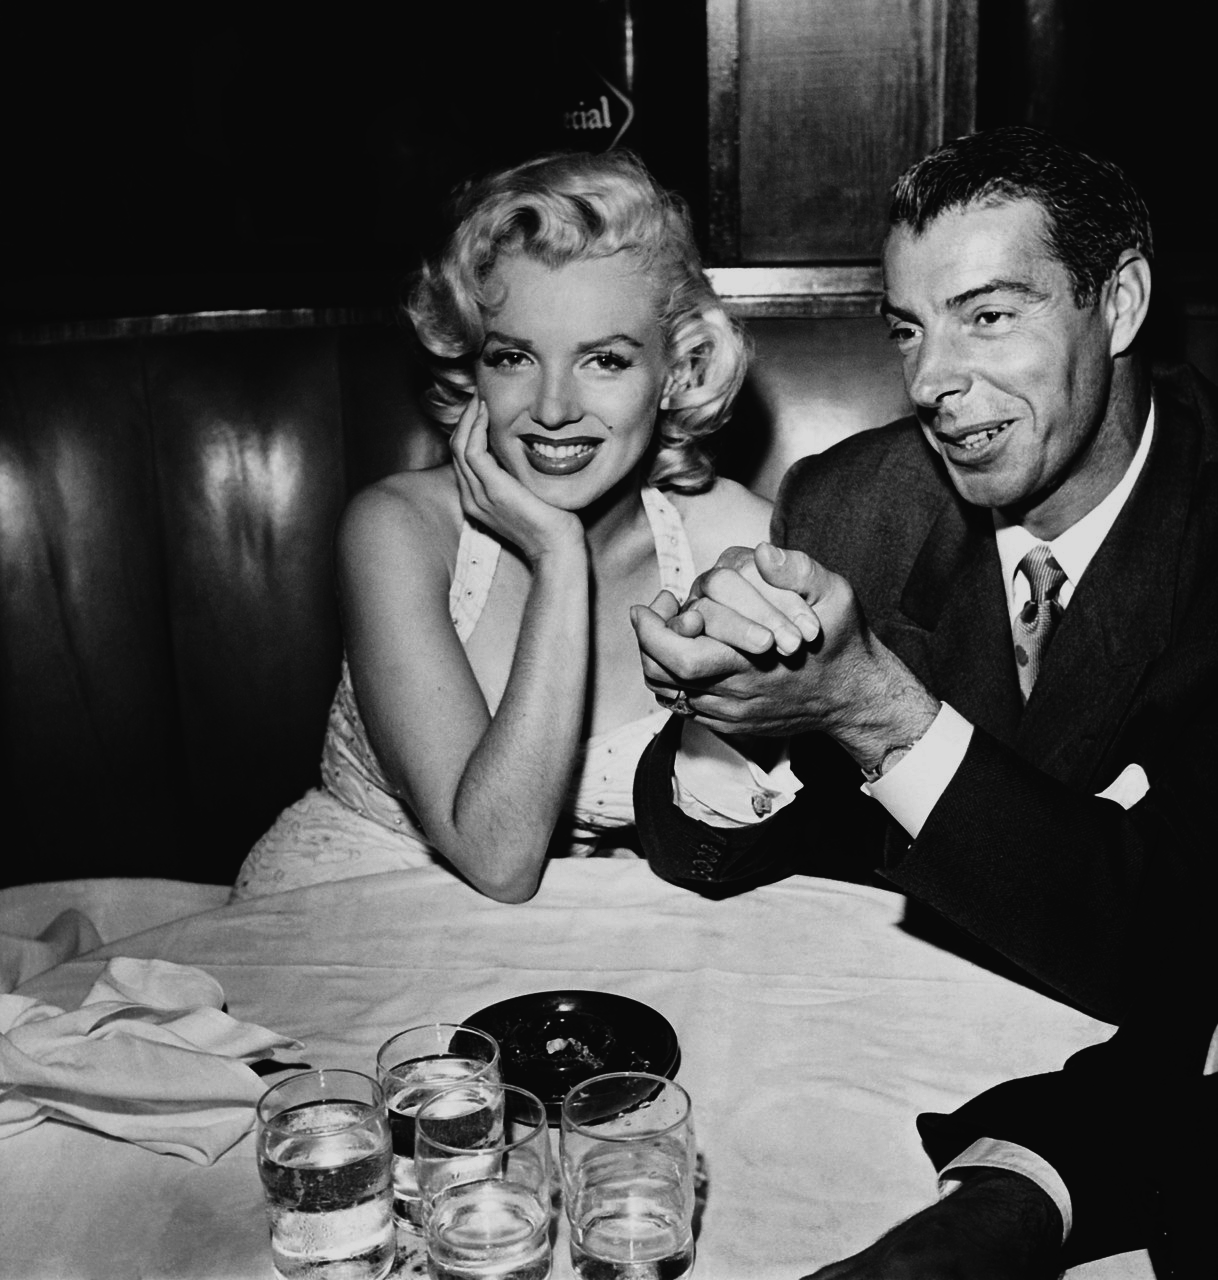 Marilyn Monroe and Joe DiMaggio dining at Chasen's in 1953, a few months before their marriage in January 1954